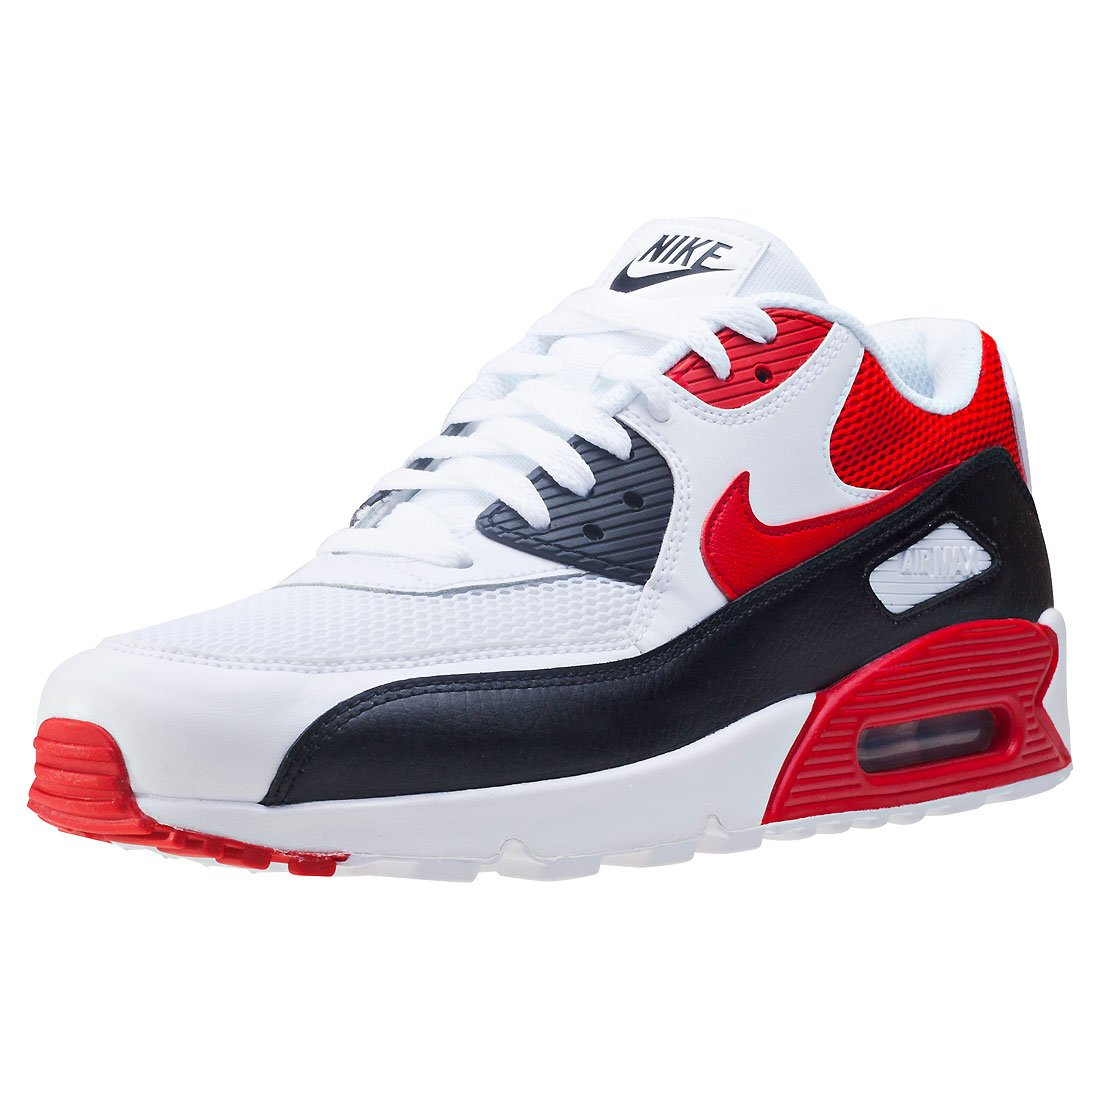 Nike Air Max 90 Essential University Red White Blackened